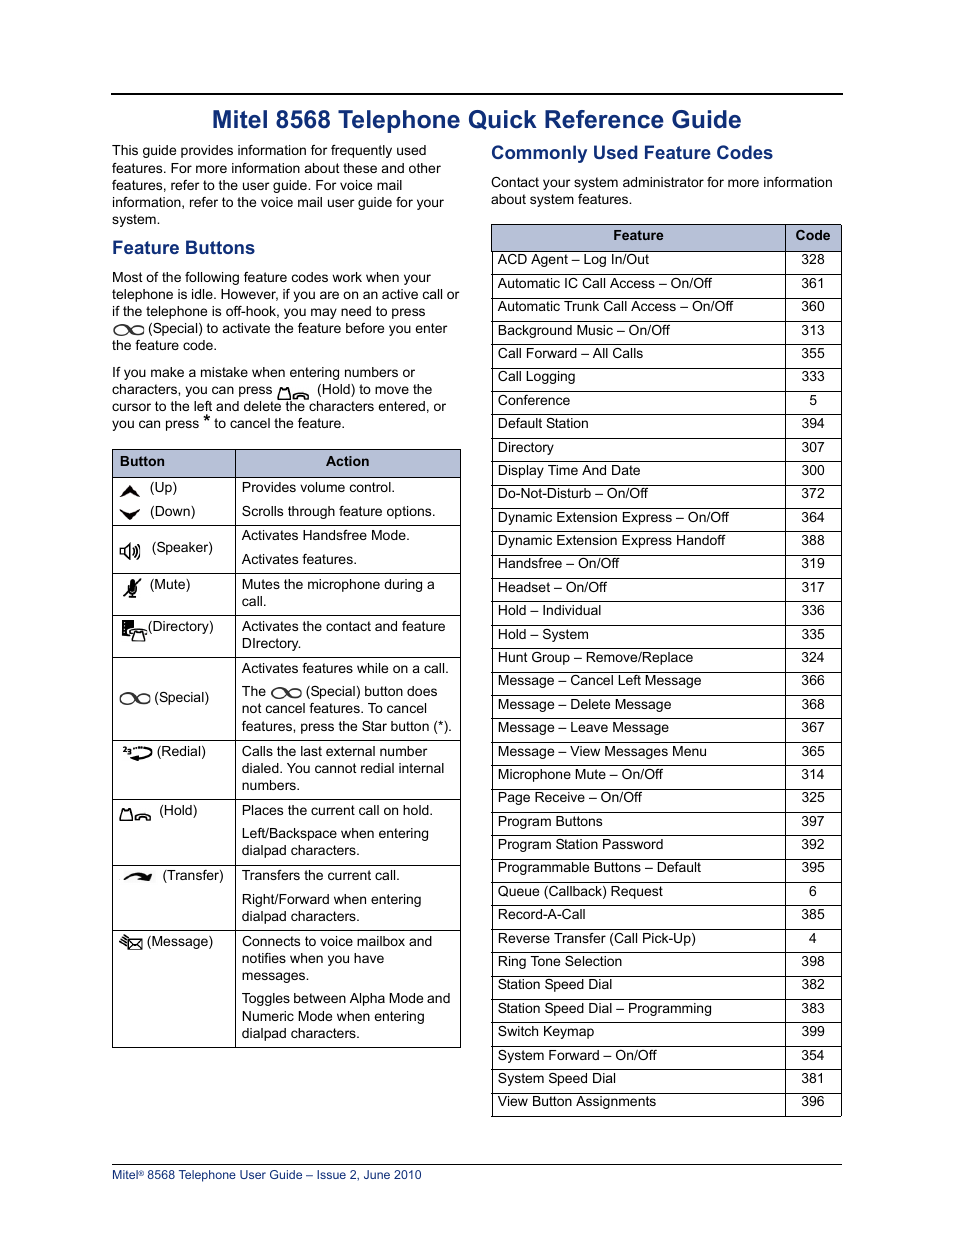 Mitel 8568 Telephone Quick Reference Guide  Feature